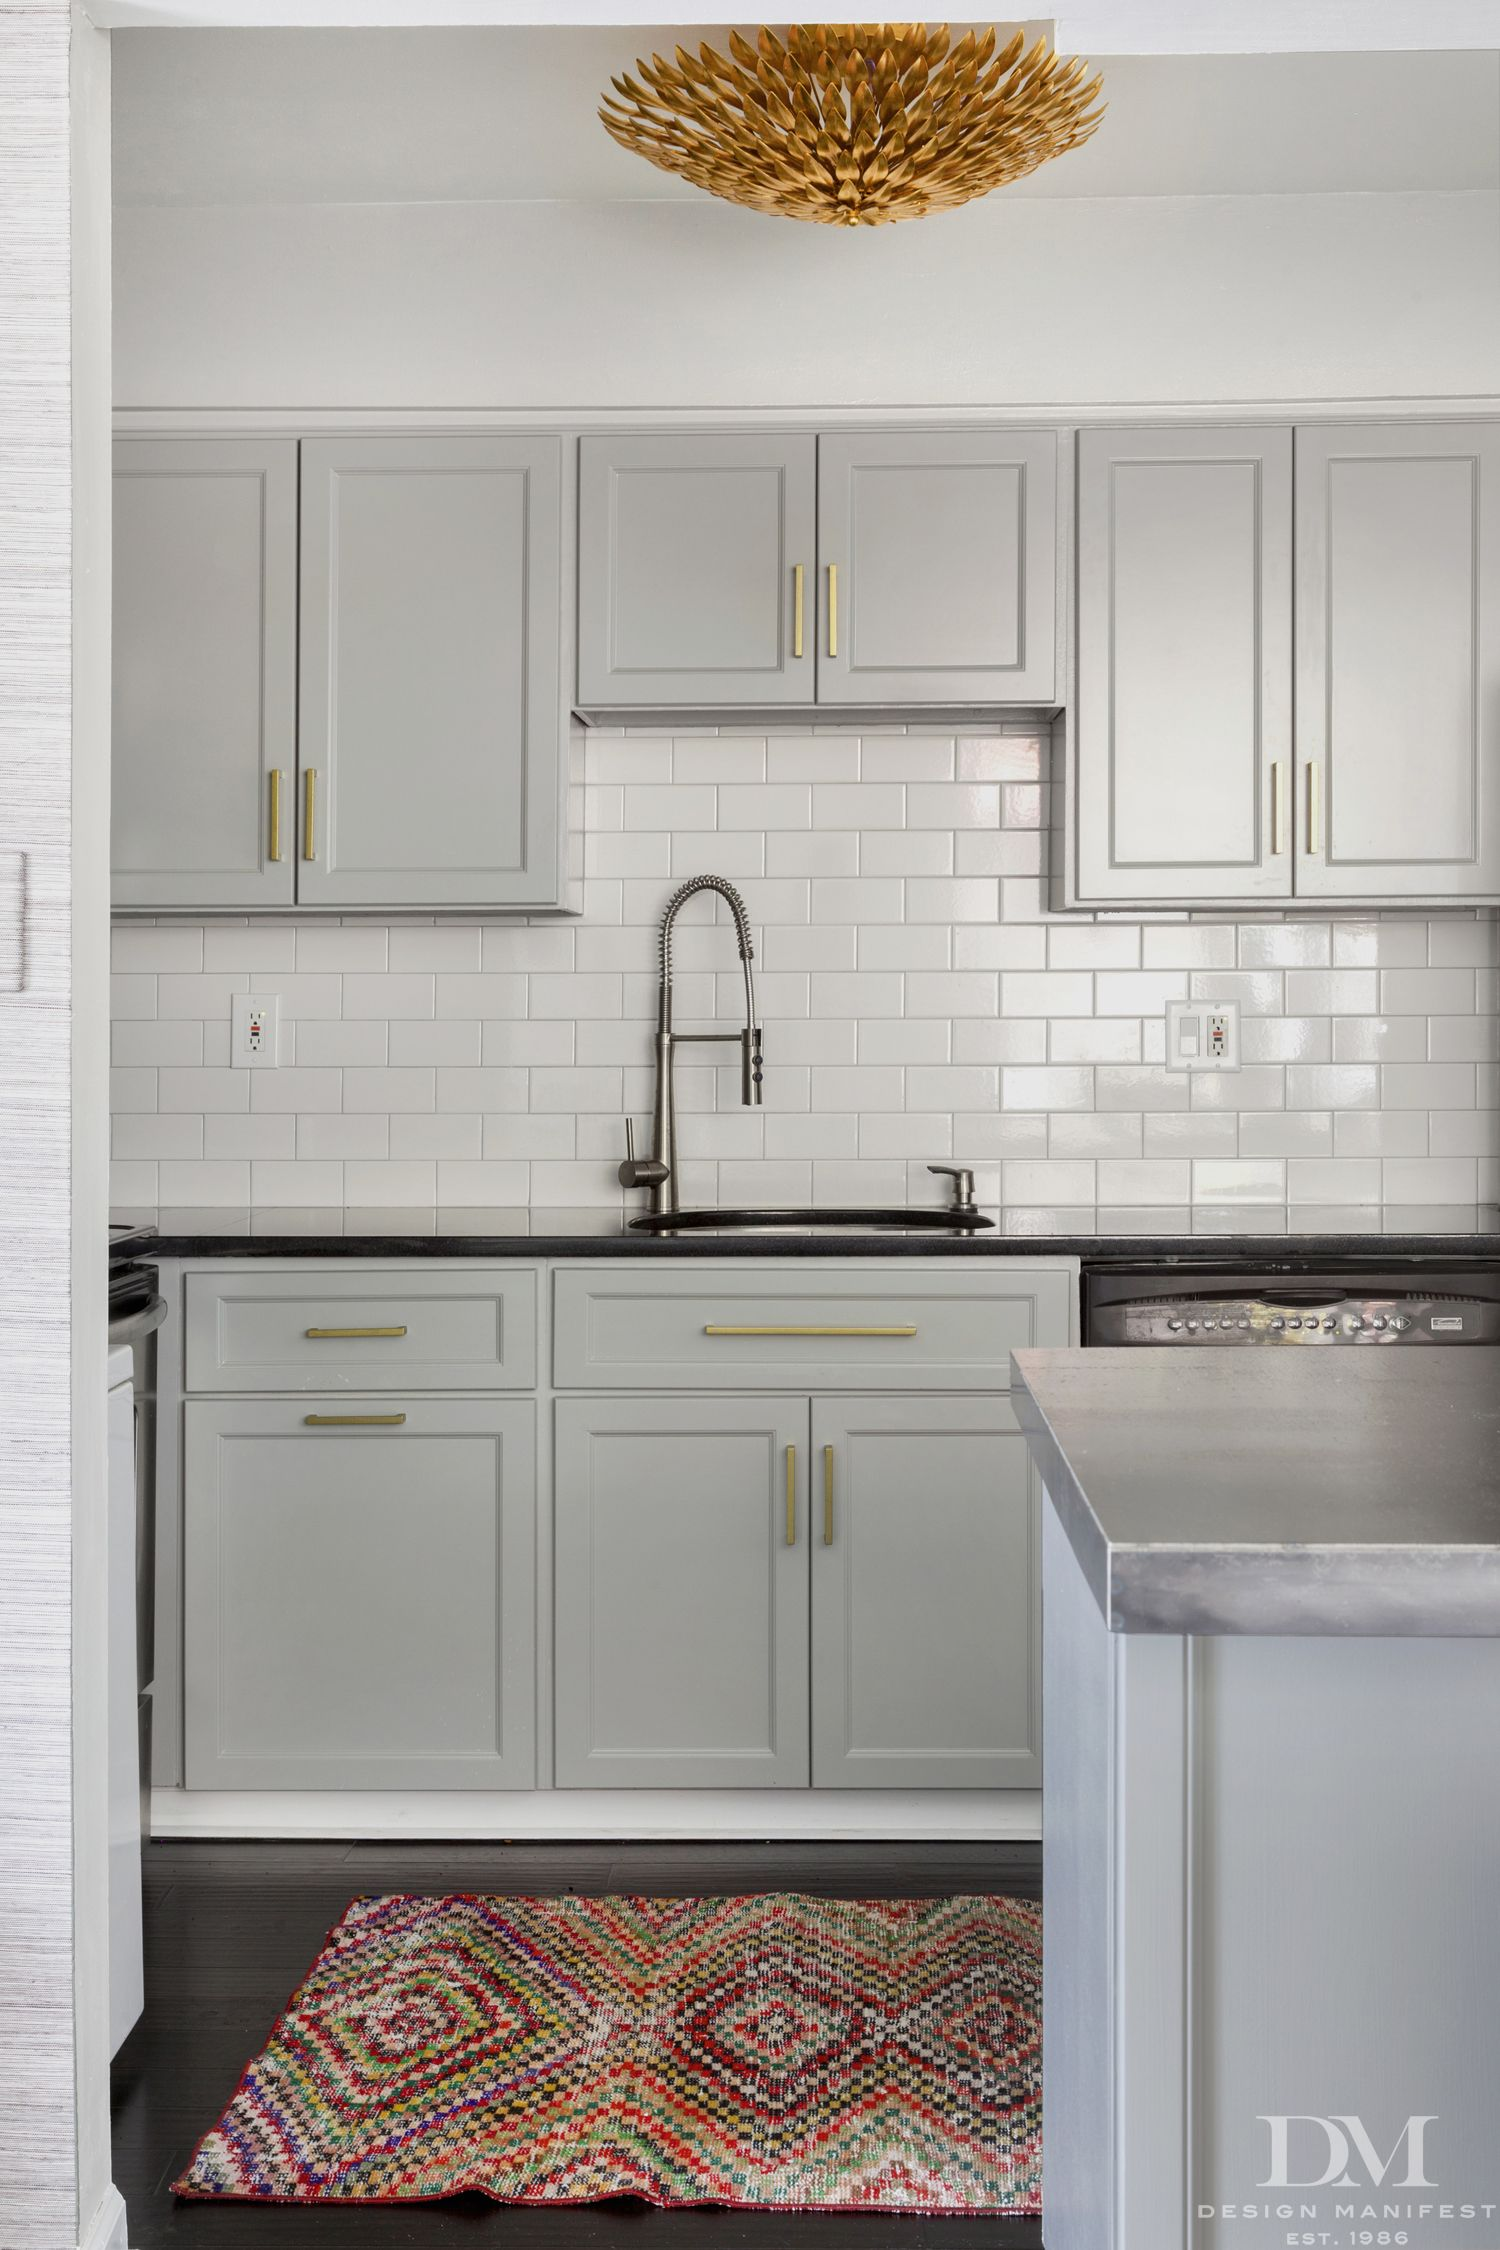 We're totally coveting this condo kitchen One